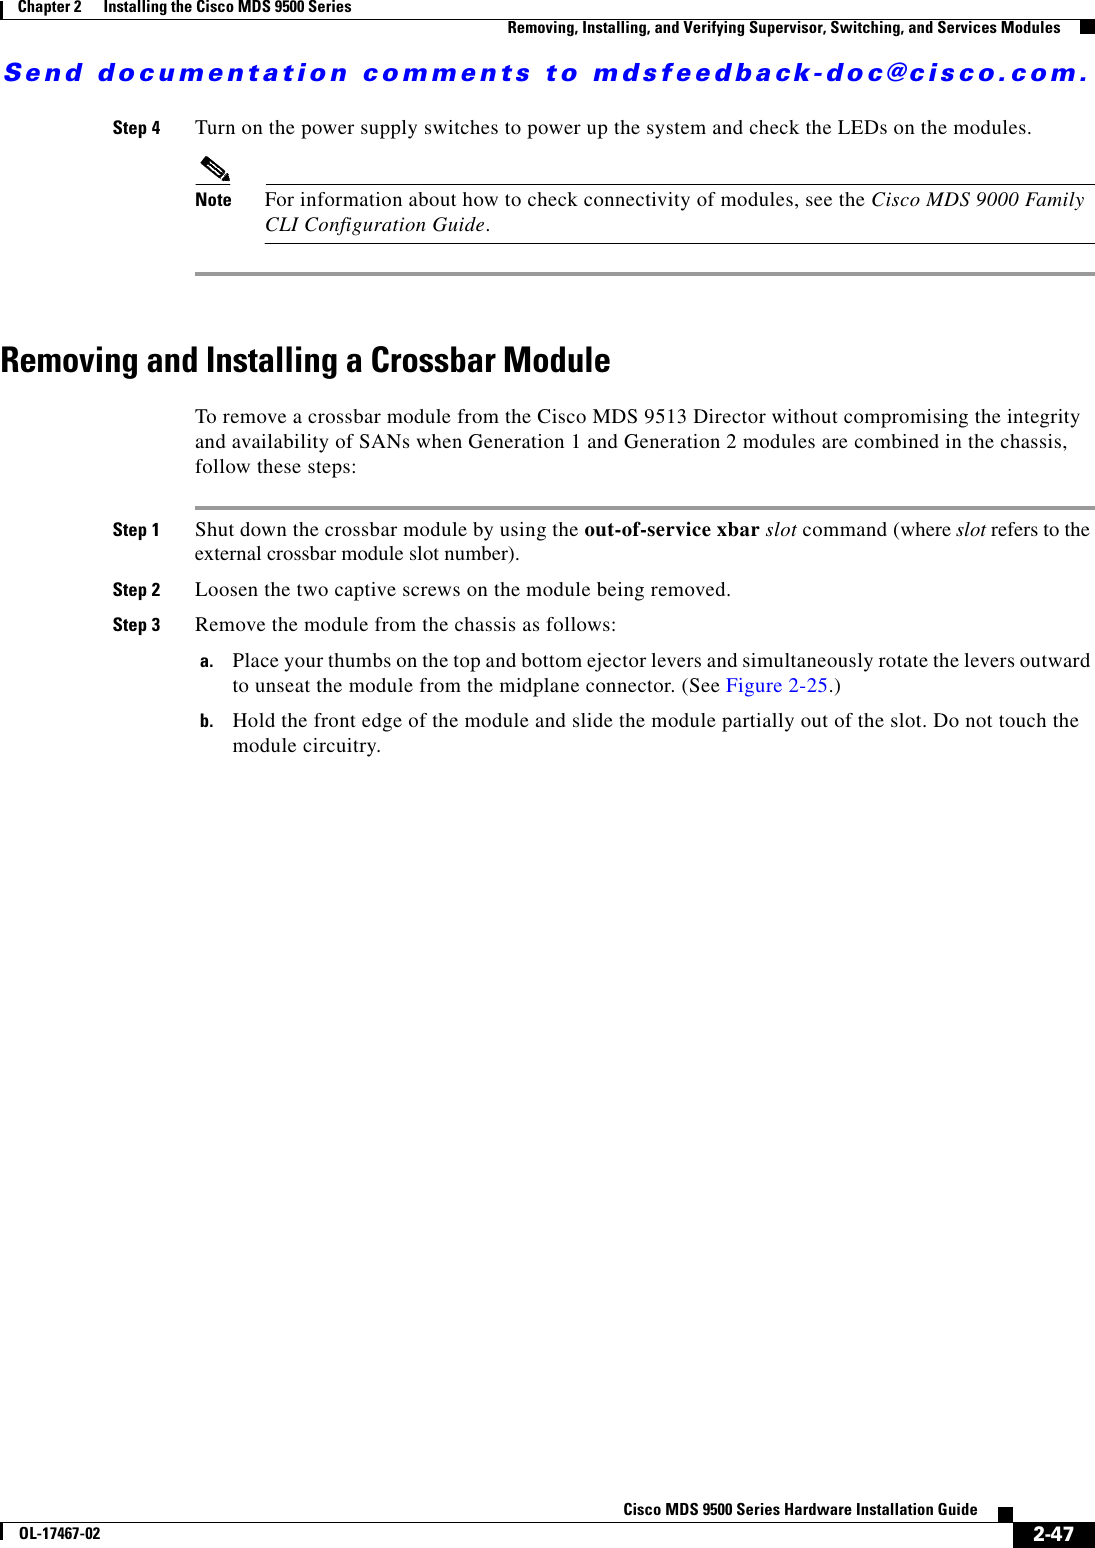 Cisco Systems Mds 9500 Series Installation Manual